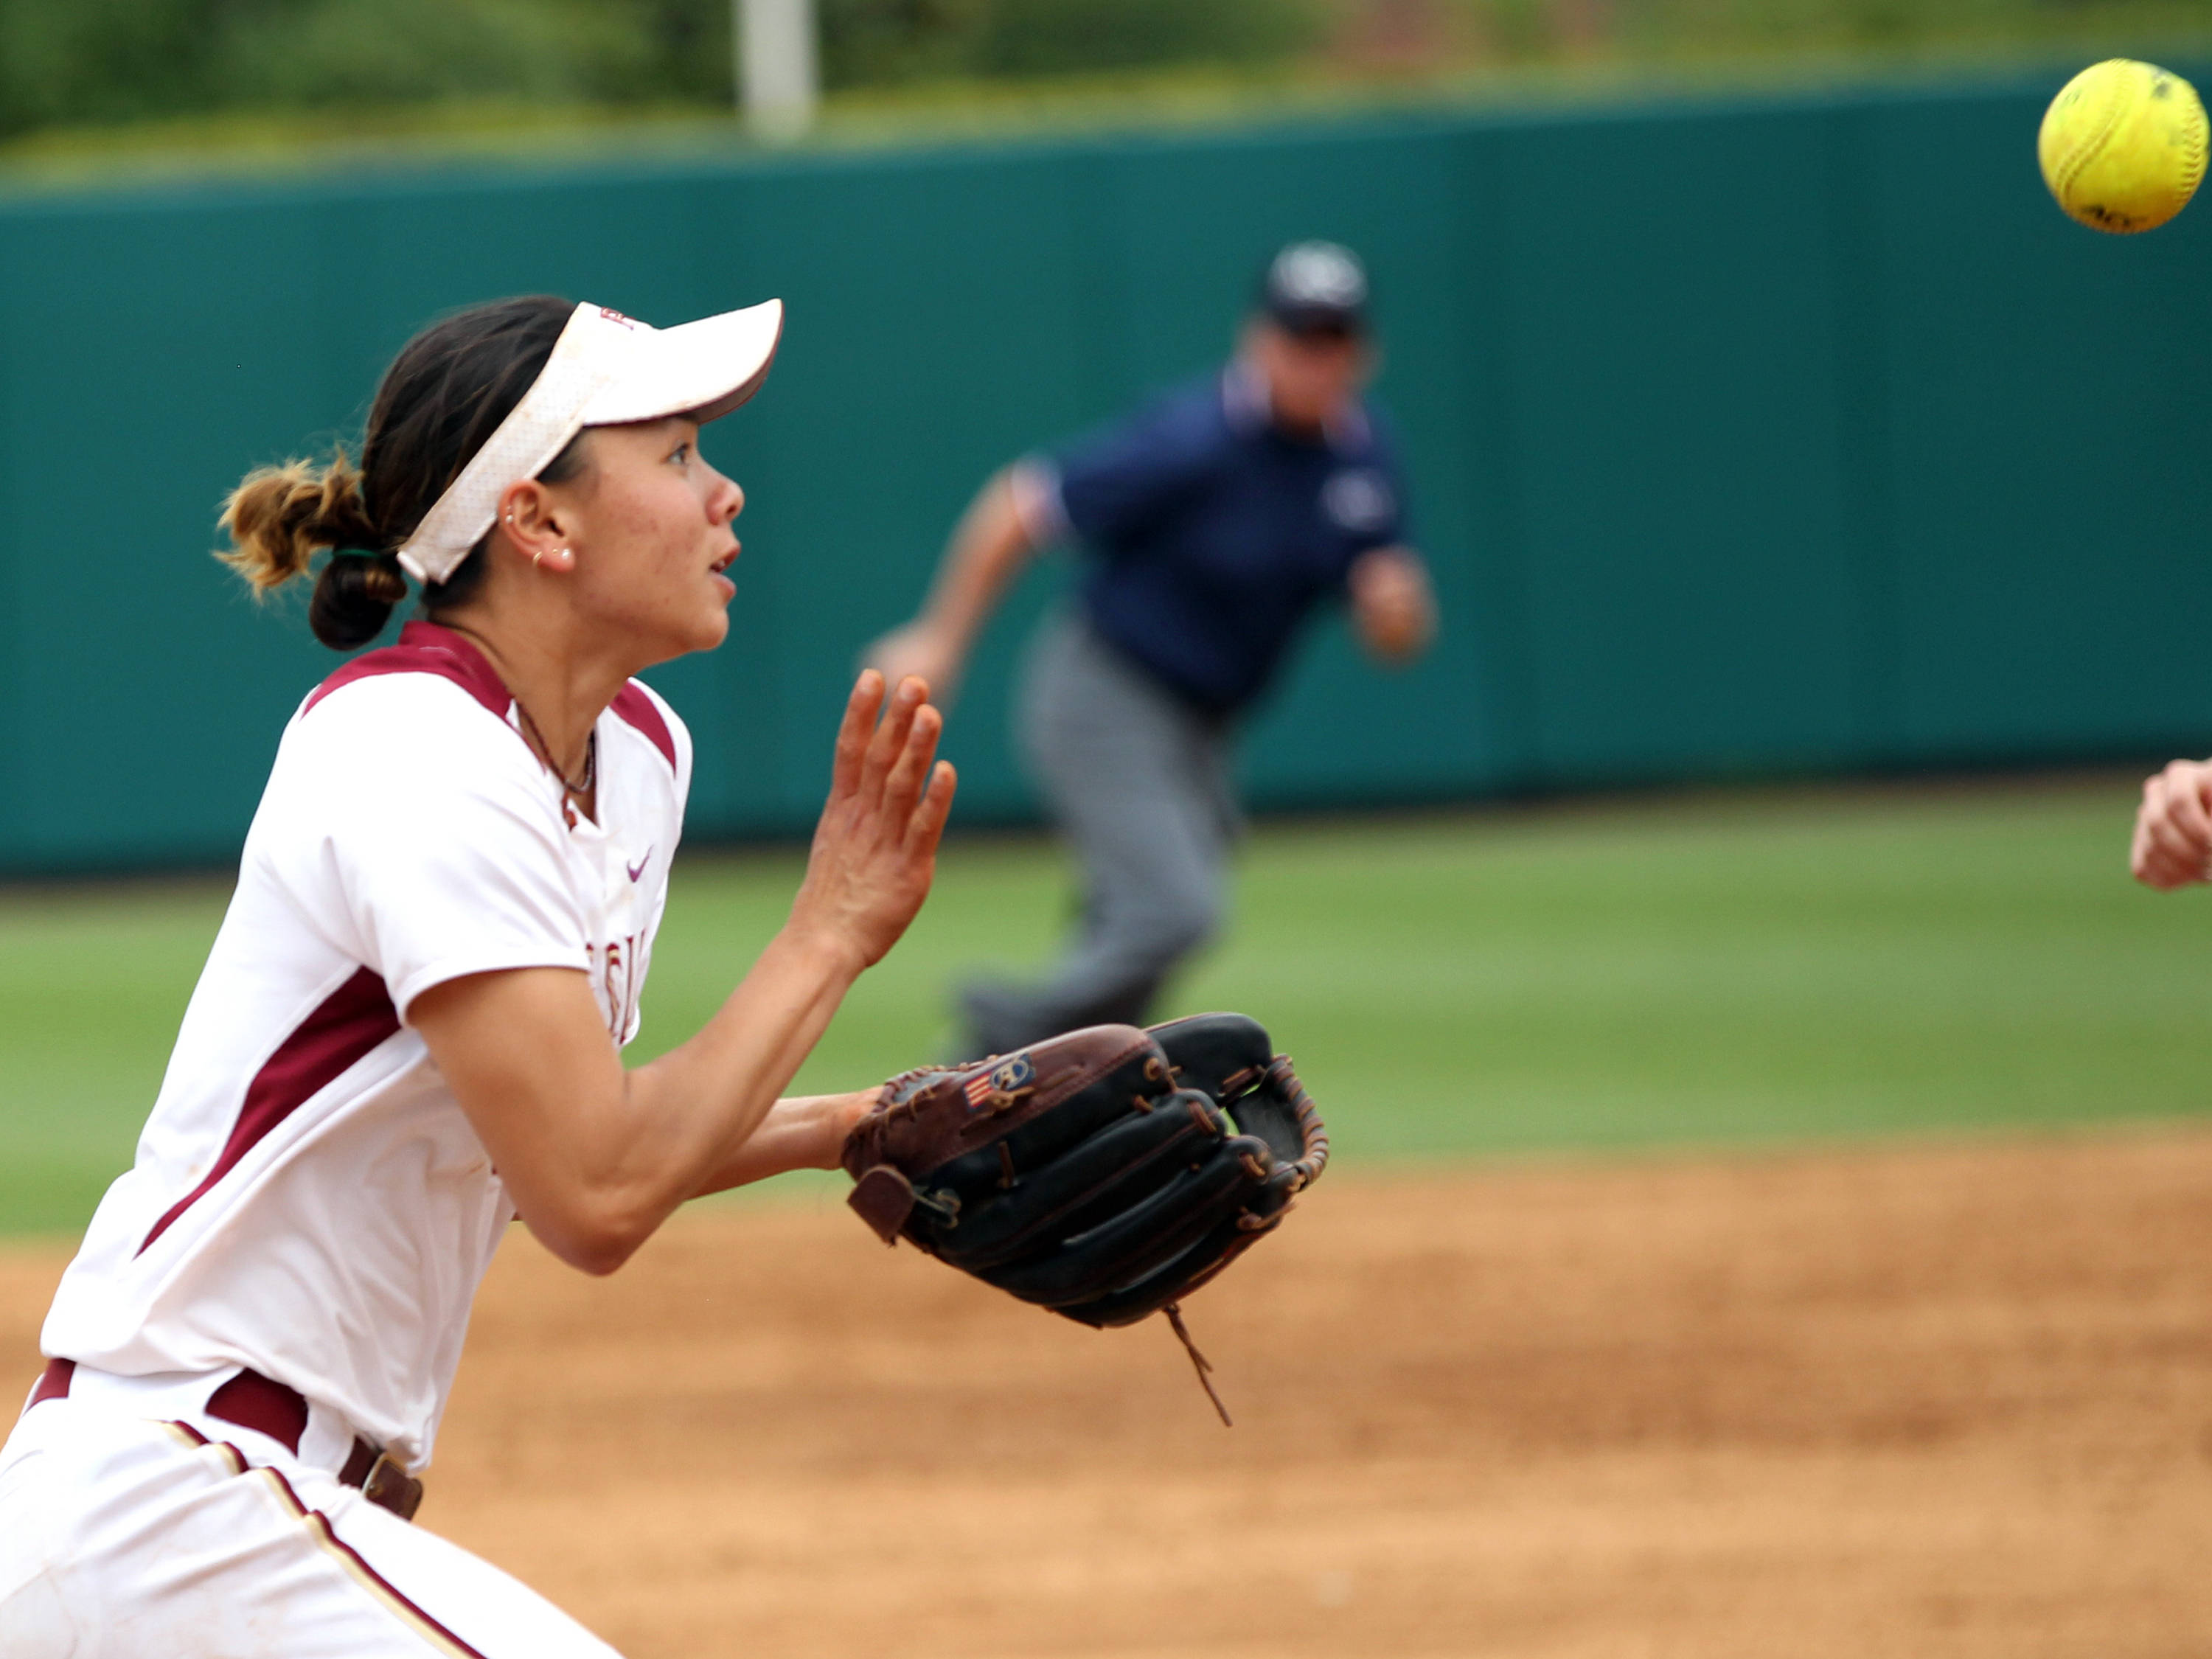 Courtney Senas, FSU VS NC, ACC Championship Semifinals, Tallahassee, FL,  05/10/13 . (Photo by Steve Musco)